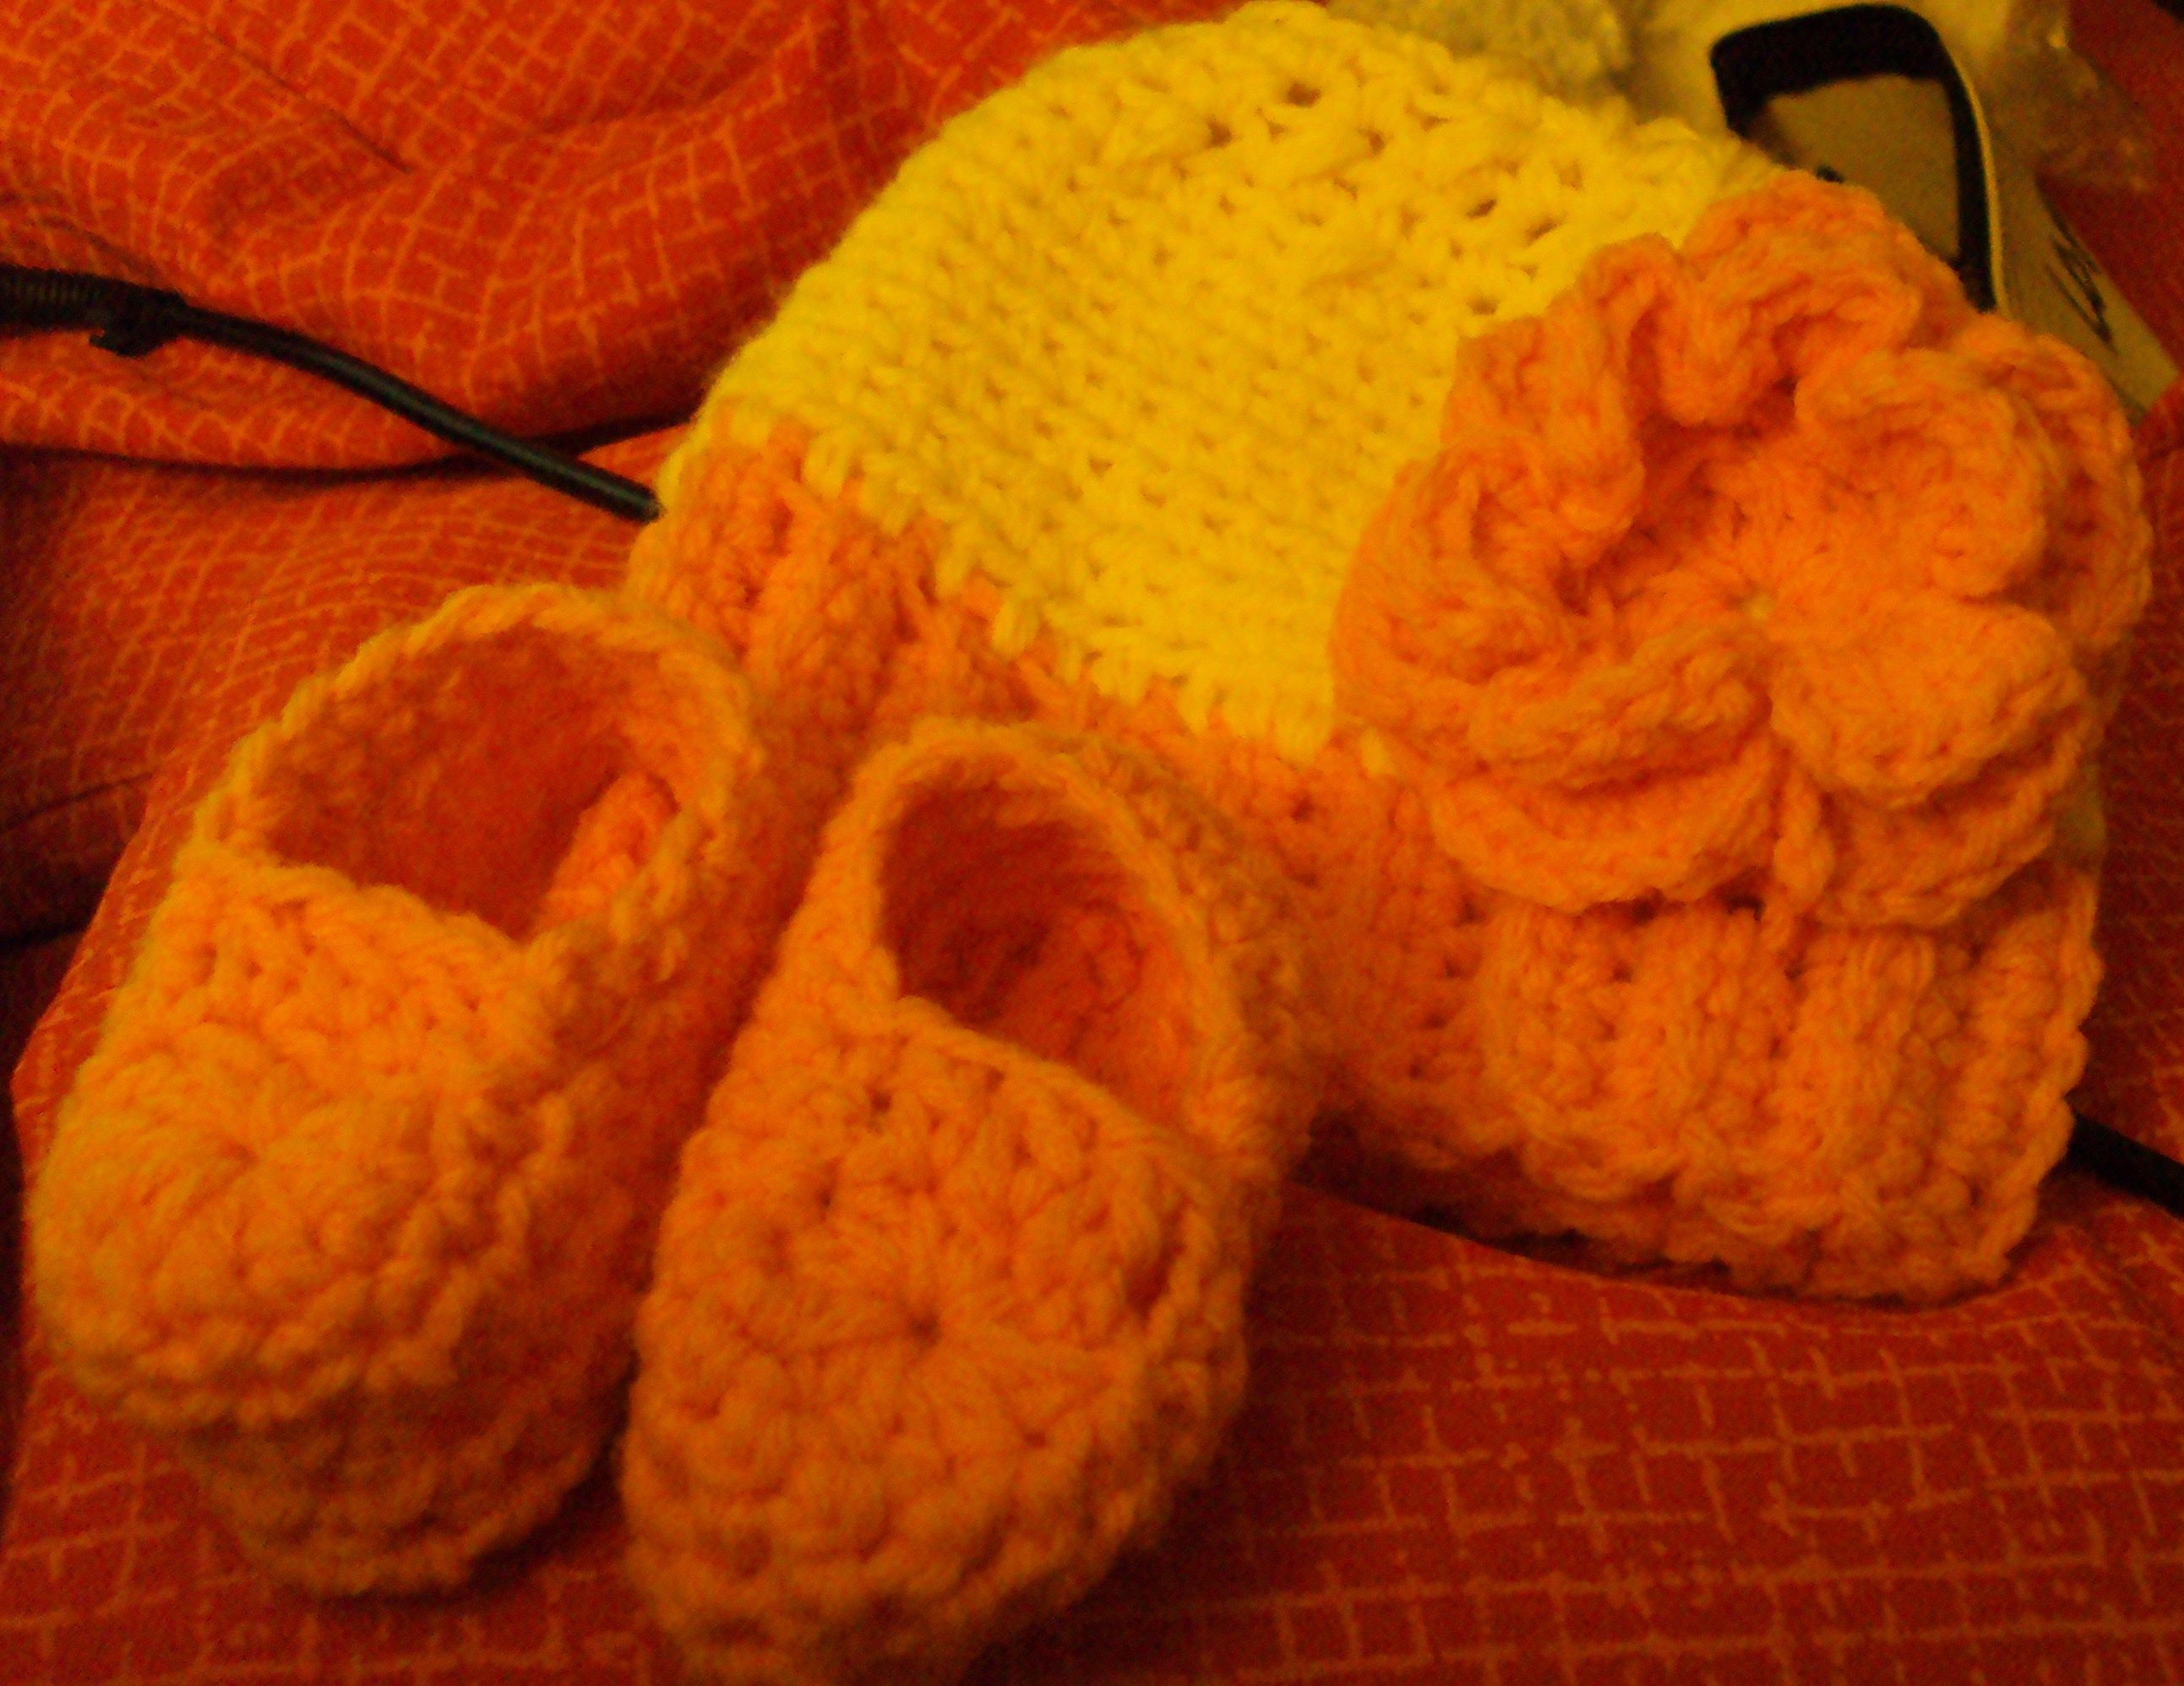 Crochet baby hat & booties